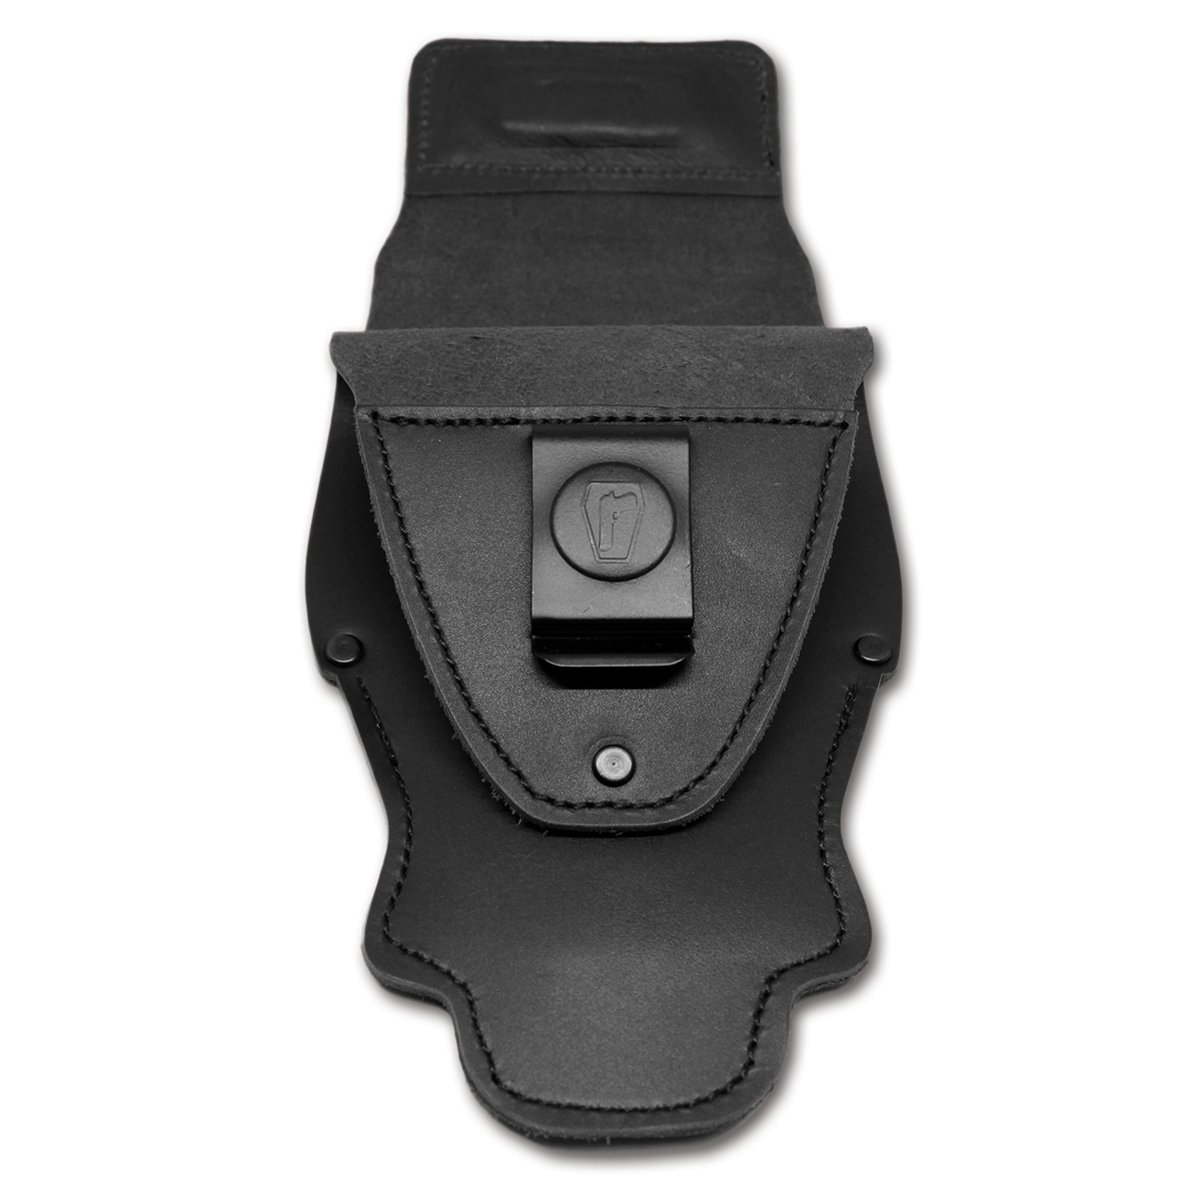 Urban Carry G2 Laser Version (Black, Trooper). The G2 Laser Version Works with Most Rail Lasers and Trigger Guard Lasers in Addition to a Few Select Laser/Light Combos. by Urban Carry Holsters (Image #2)